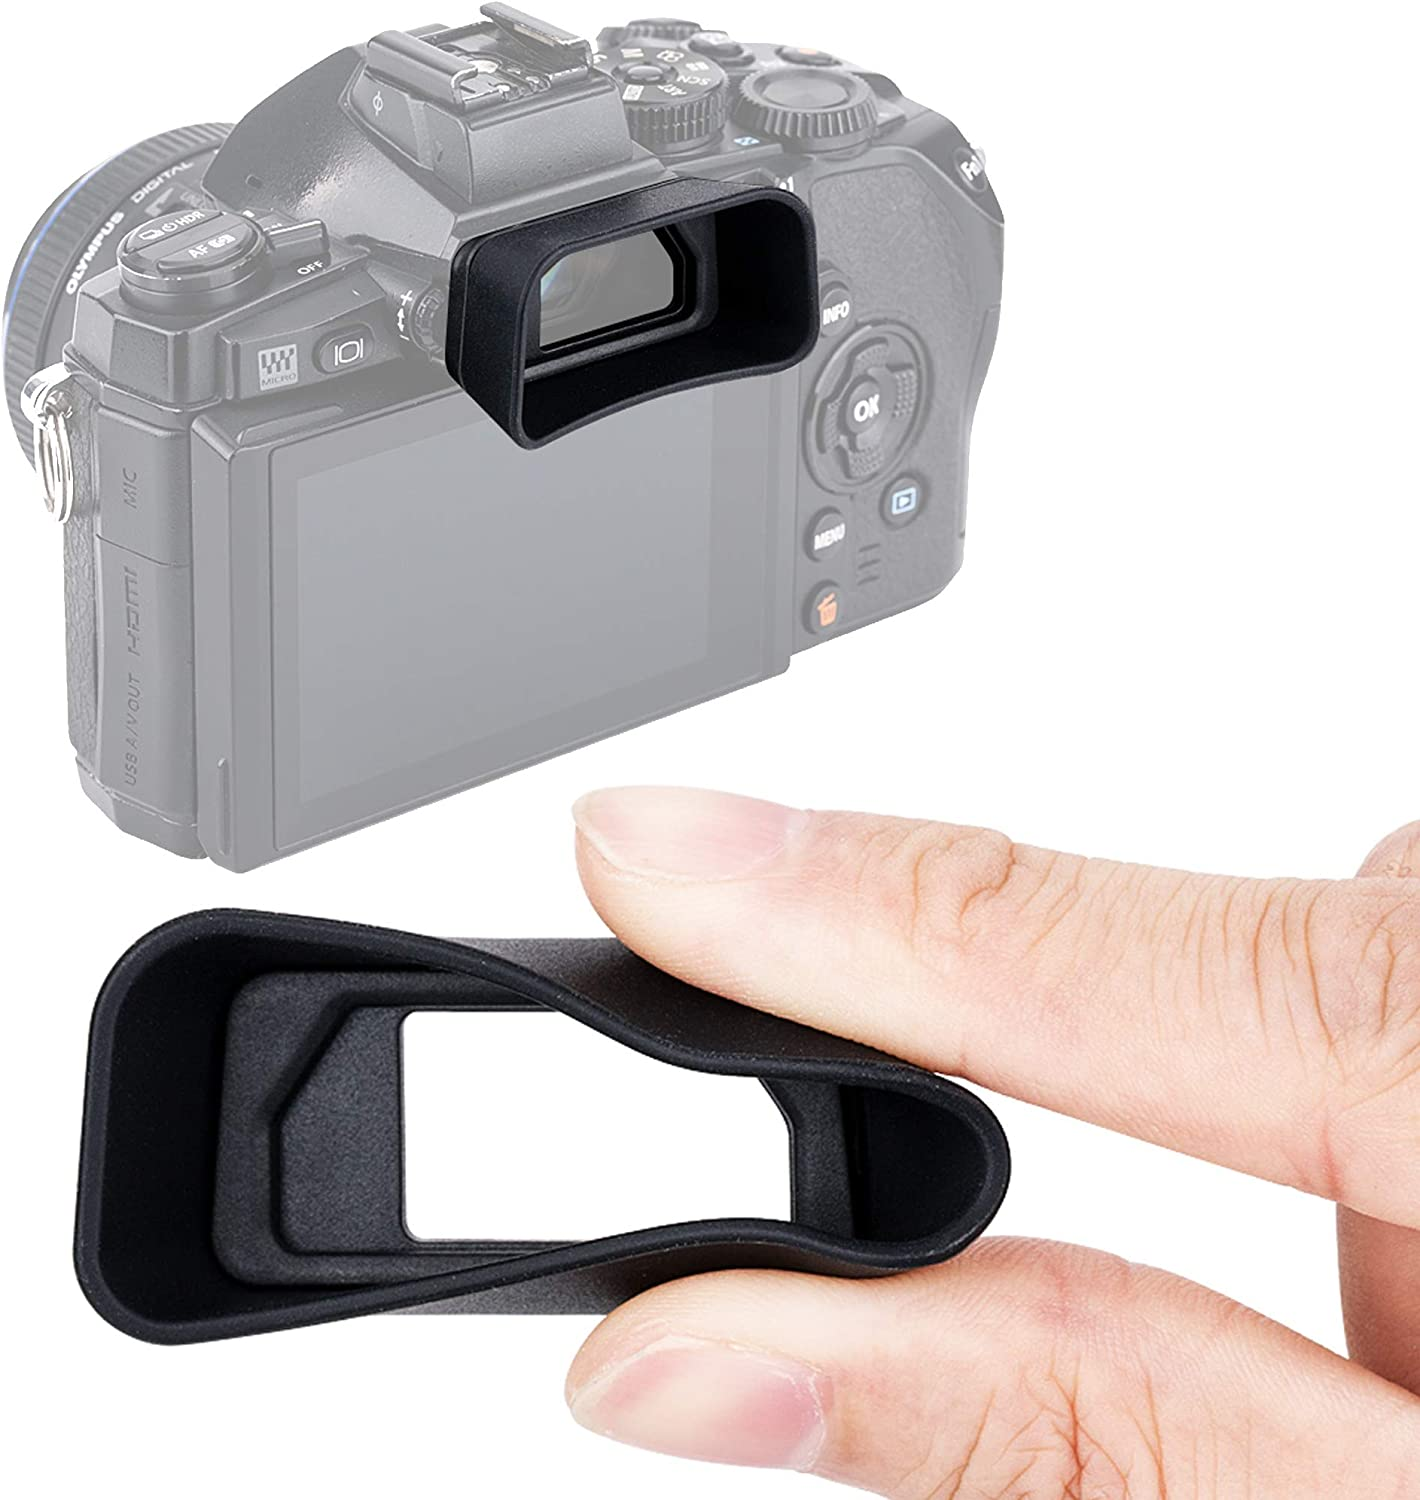 Long Eyecup Eyepiece Viewfinder for Olympus OM-D E-M1 Mark II /& E-M1 Replaces Olympus EP-13 EP-12 Eye Cup